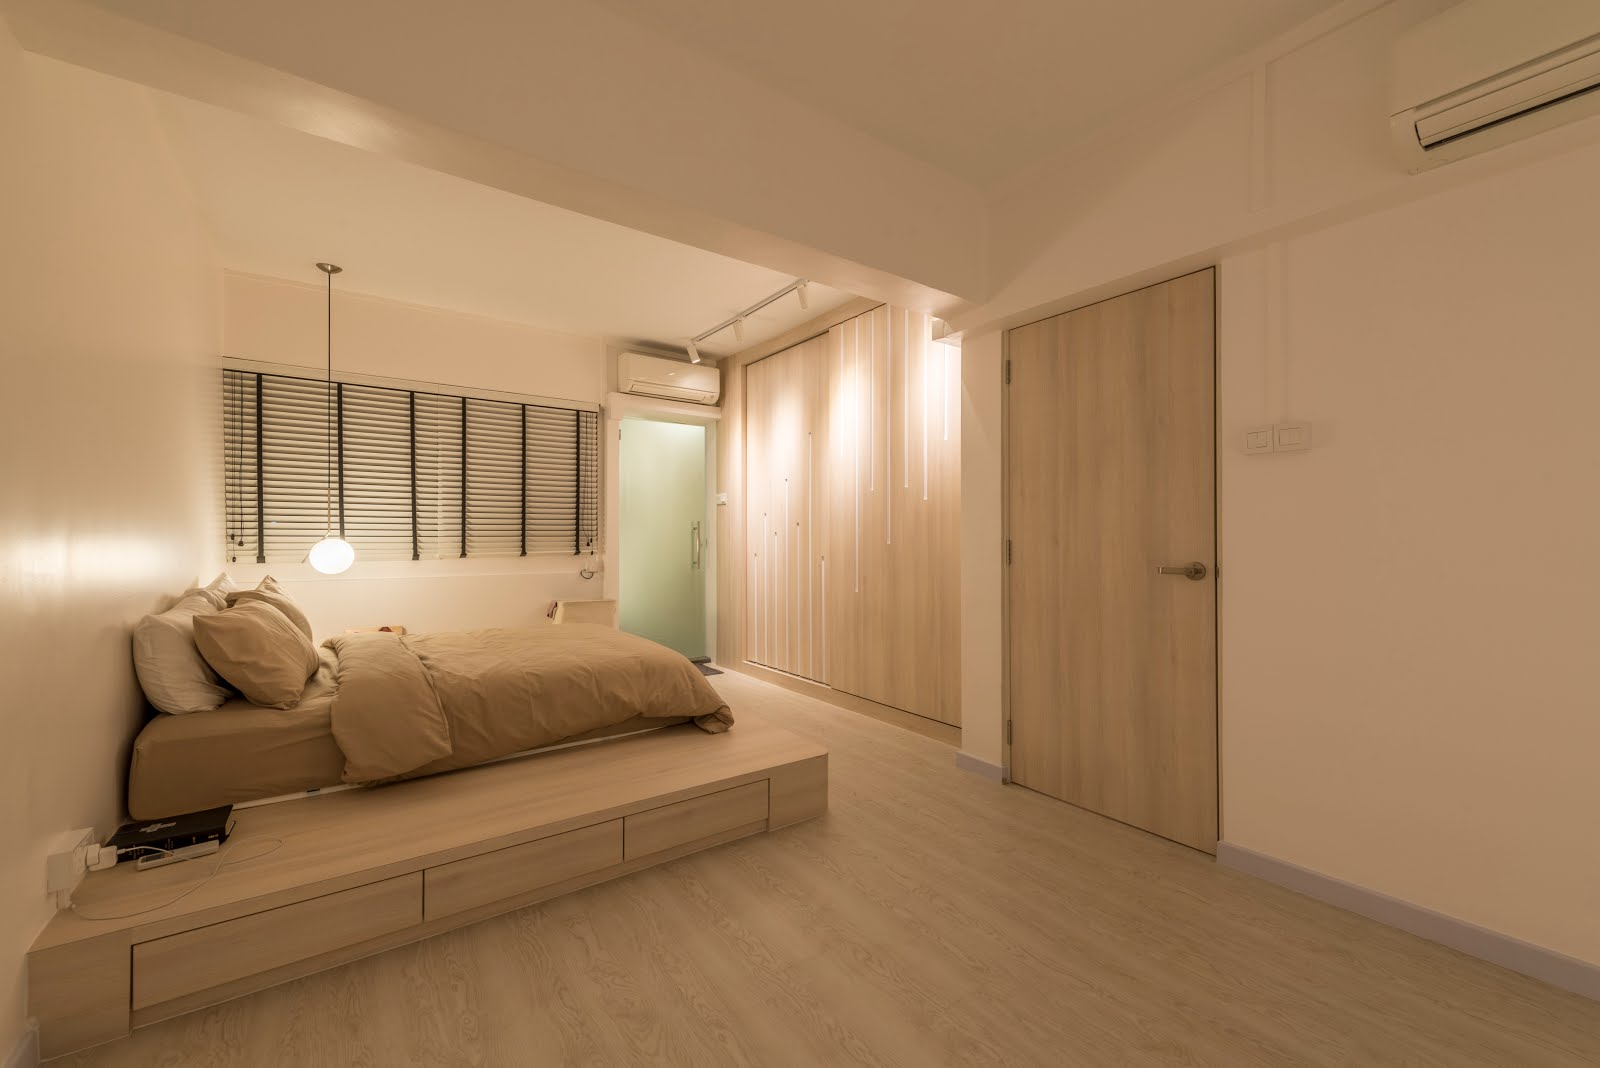 Interior Design Guide Minimalist interior design HDB 3 room